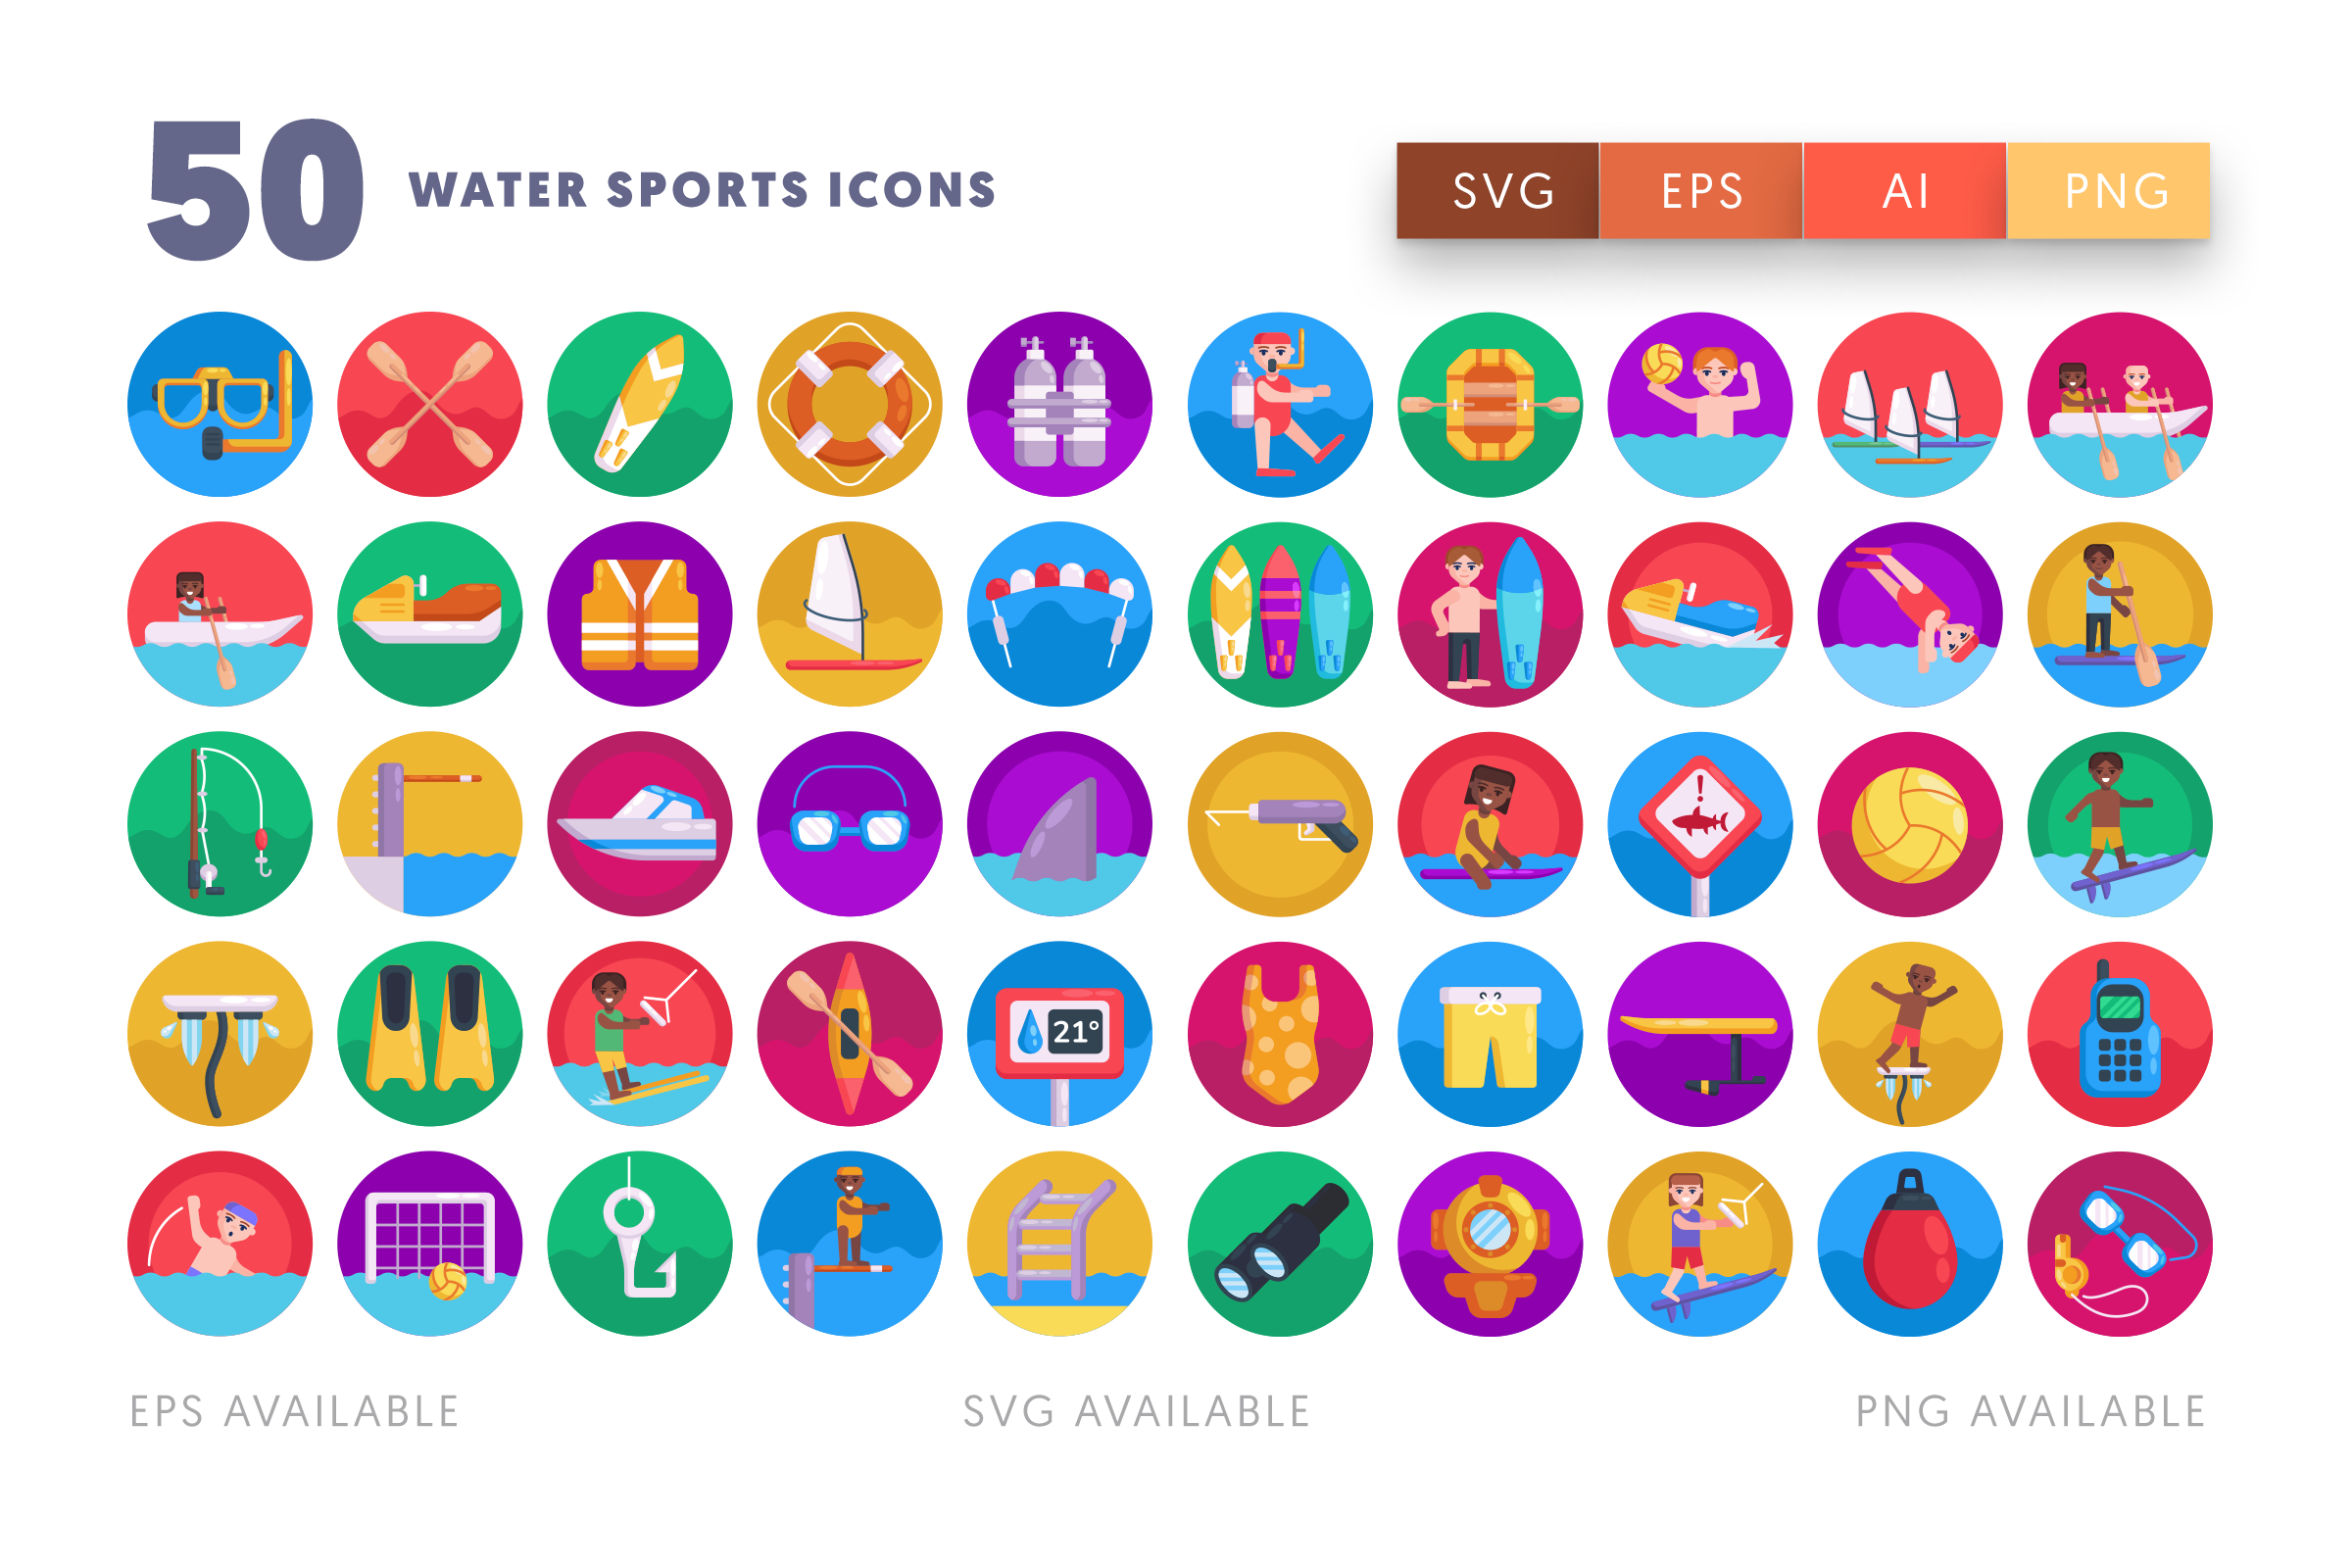 Water Sports icons png/svg/eps